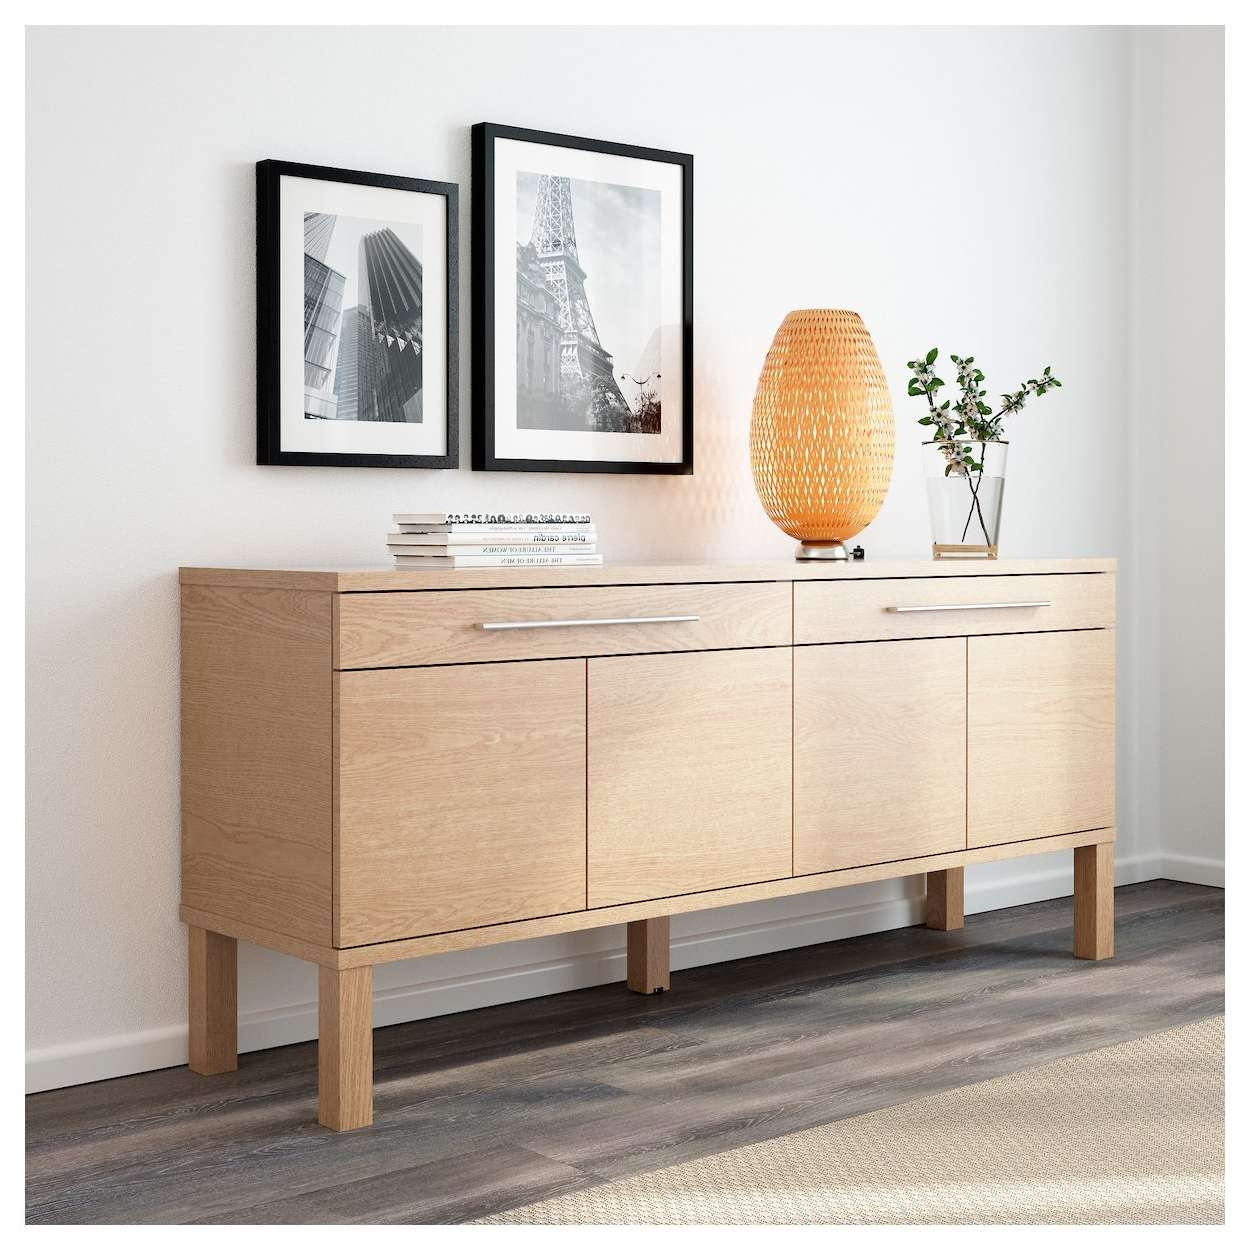 Bjursta Sideboard Oak Veneer 155x68 Cm Ikea – 28 Images – Ikea In Ikea Bjursta Sideboards (View 15 of 20)